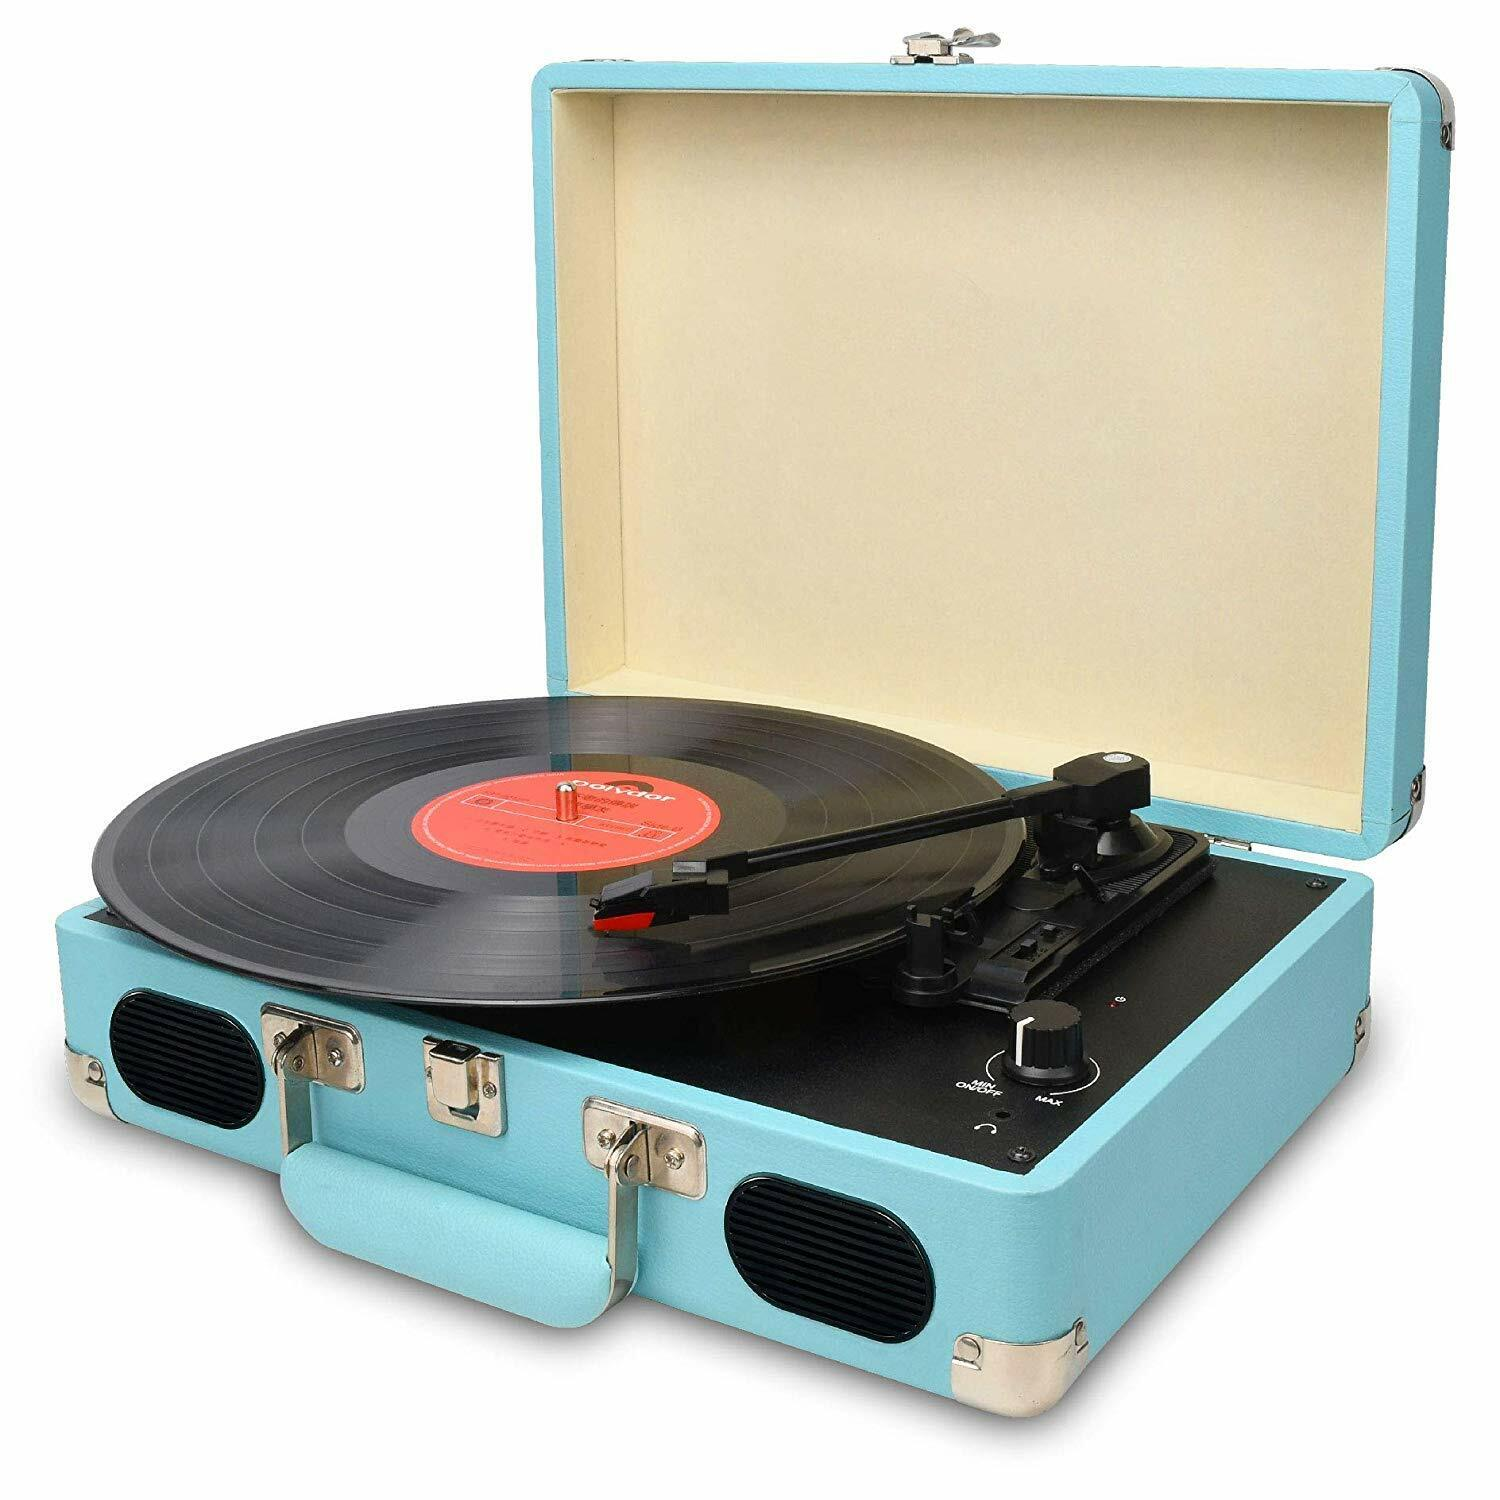 Details about Vintage Turntable,3 Speed Vinyl Record  Player,Suitcase/Briefcase Style